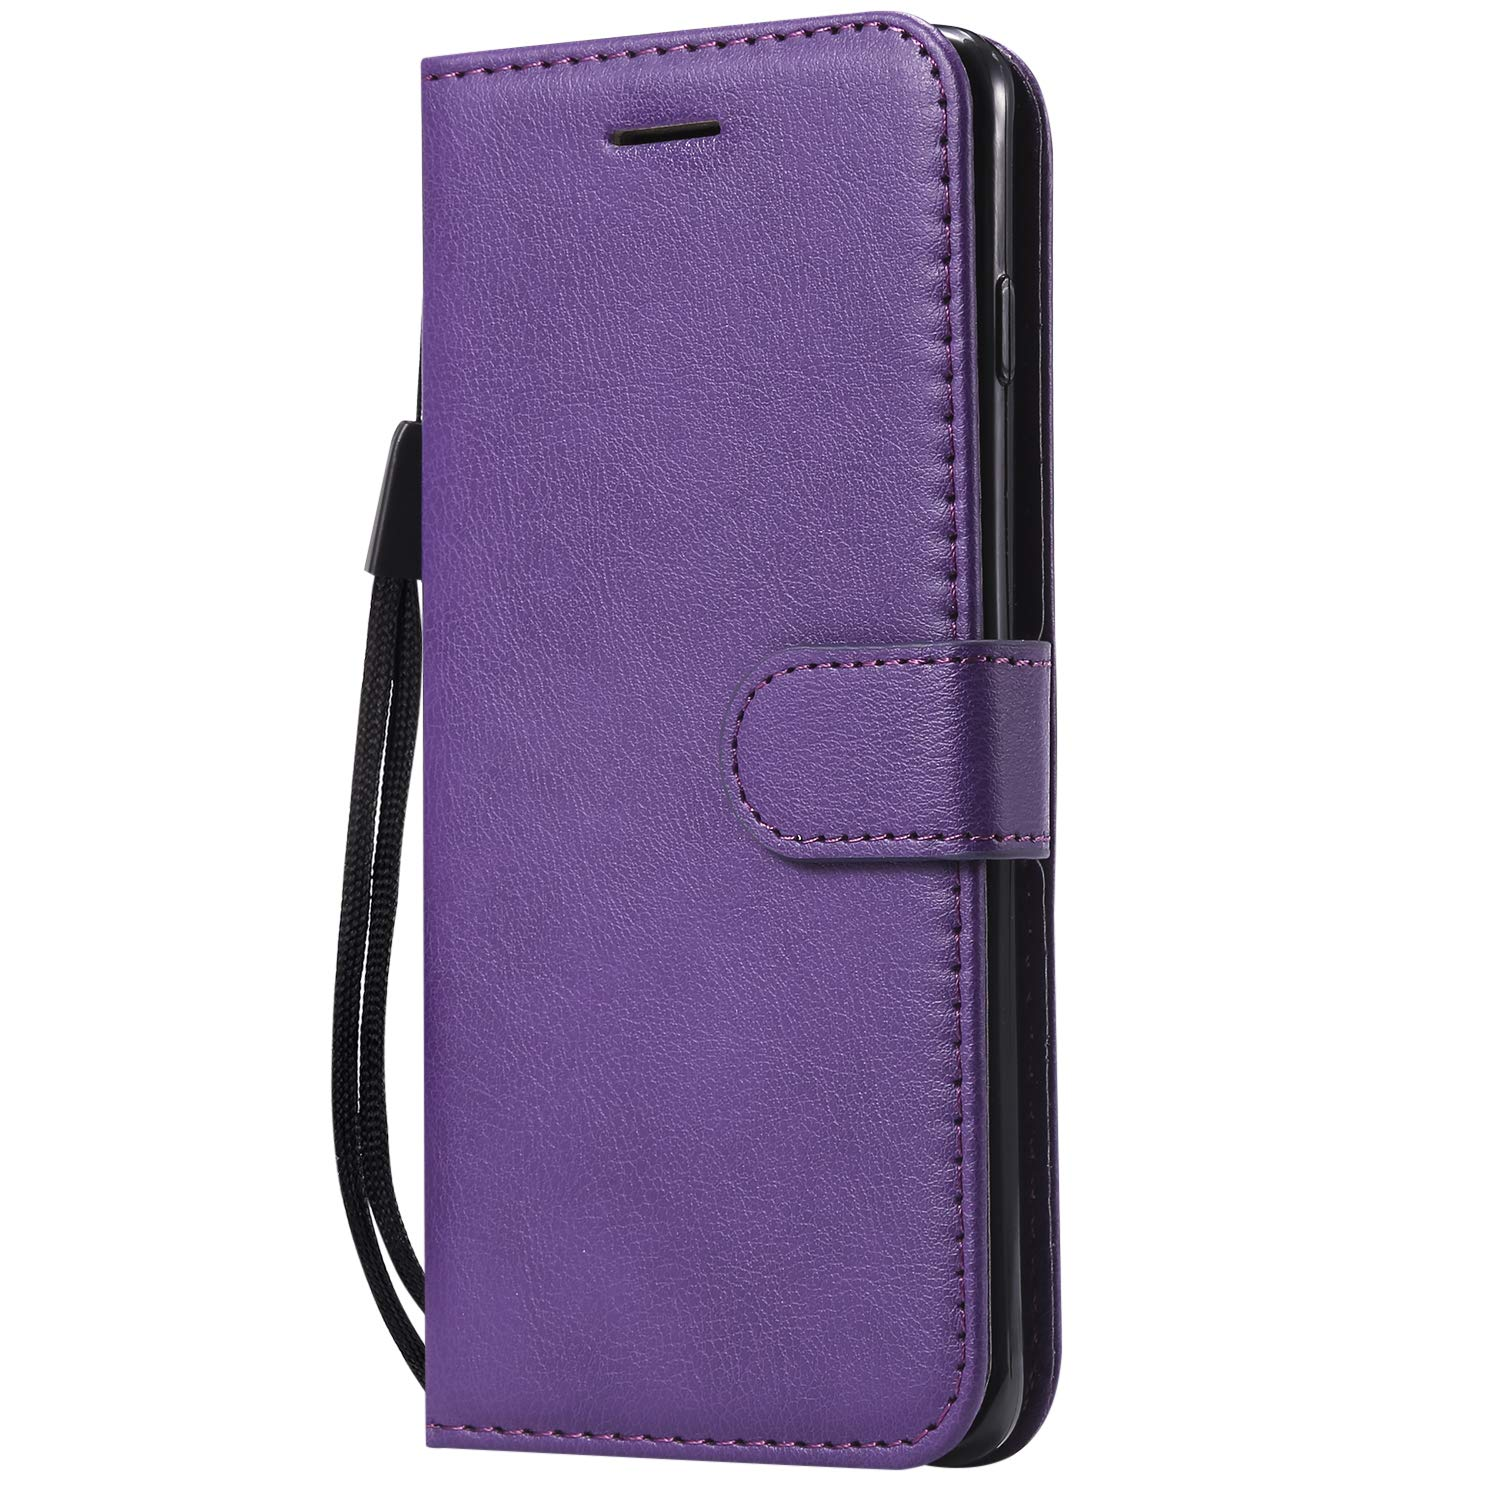 Galaxy S10e Case,AIIYG DS Classic Pure Color [Kickstand Feature] Flip Folio Leather Wallet Case with ID and Credit Card Pockets for Samsung Galaxy S10e,Purple